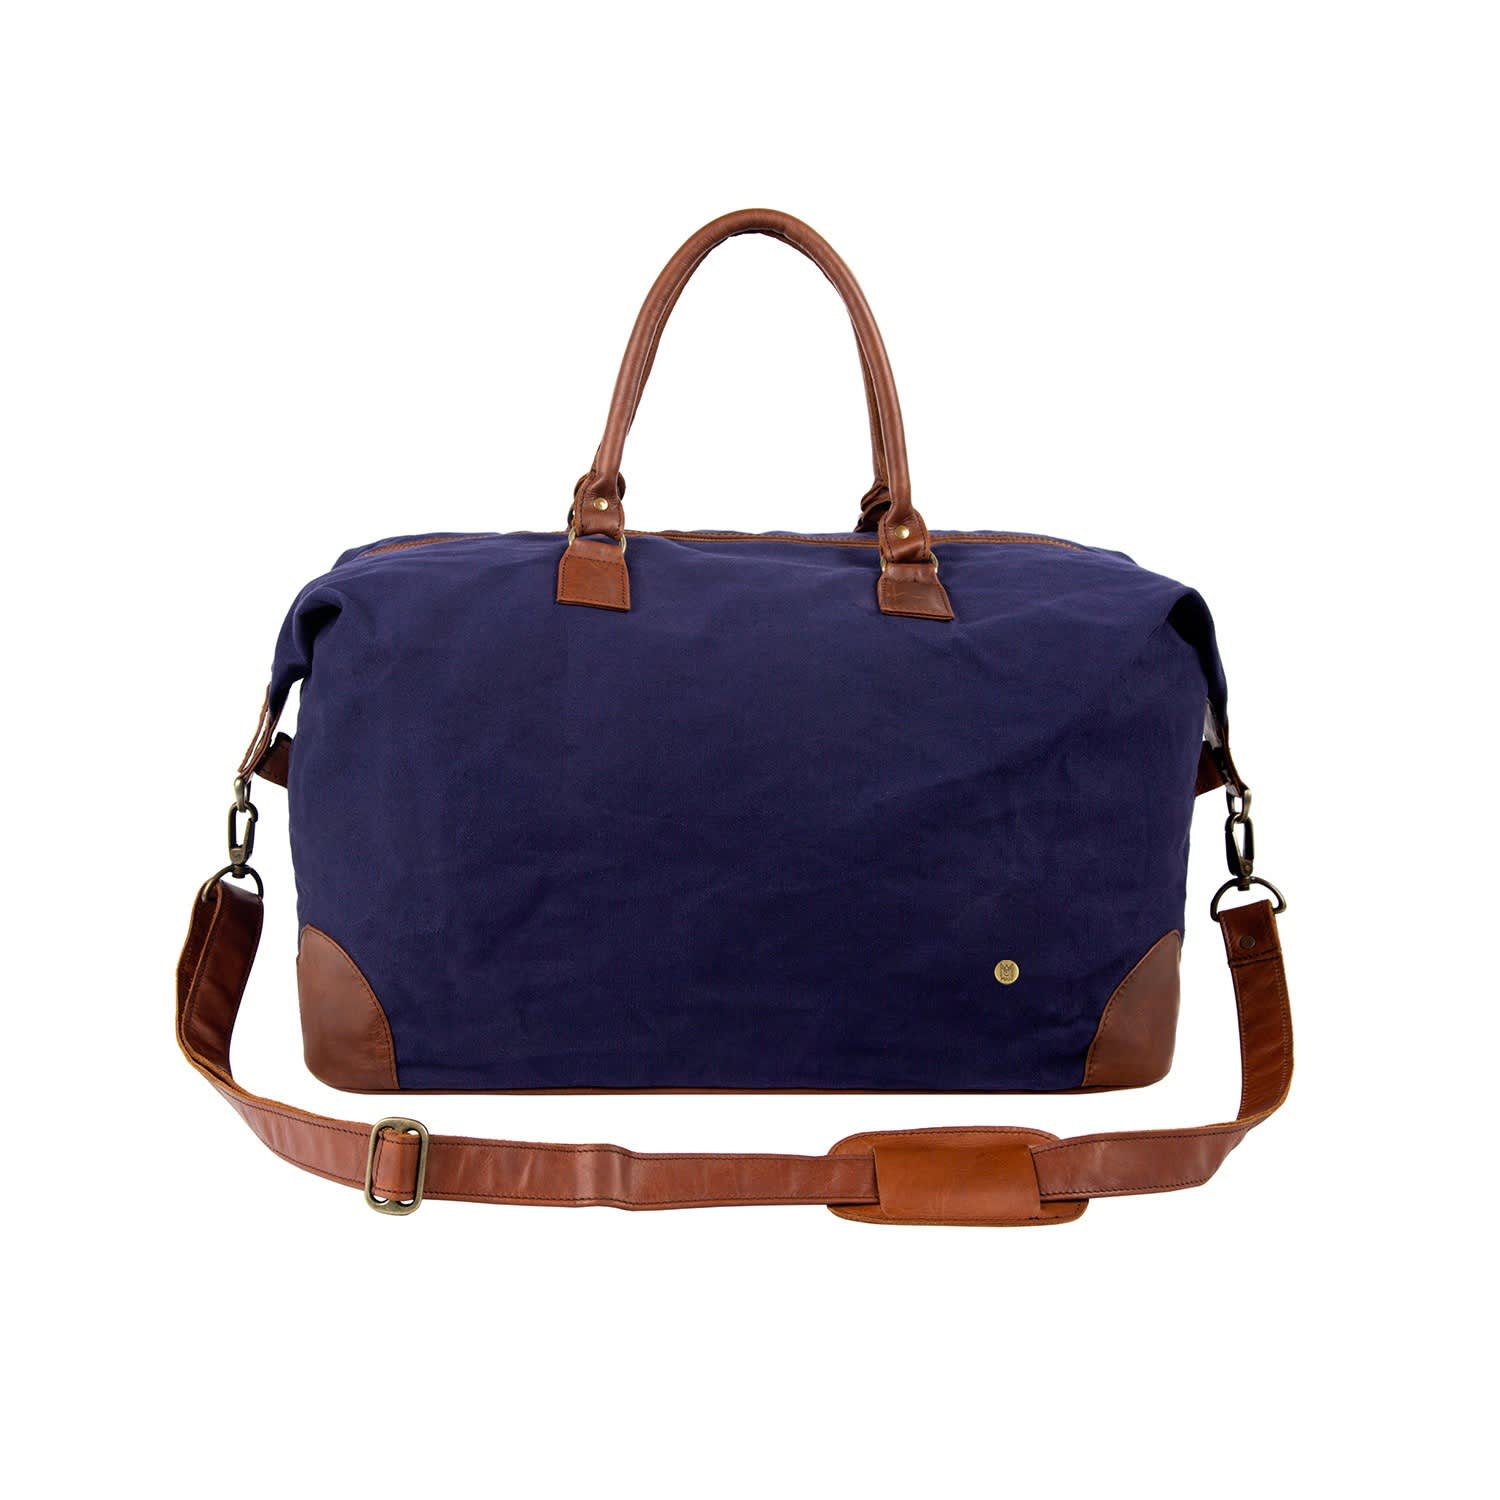 ba90732a7c64 Classic Travel Bag In Navy Canvas & Brown Leather by MAHI Leather